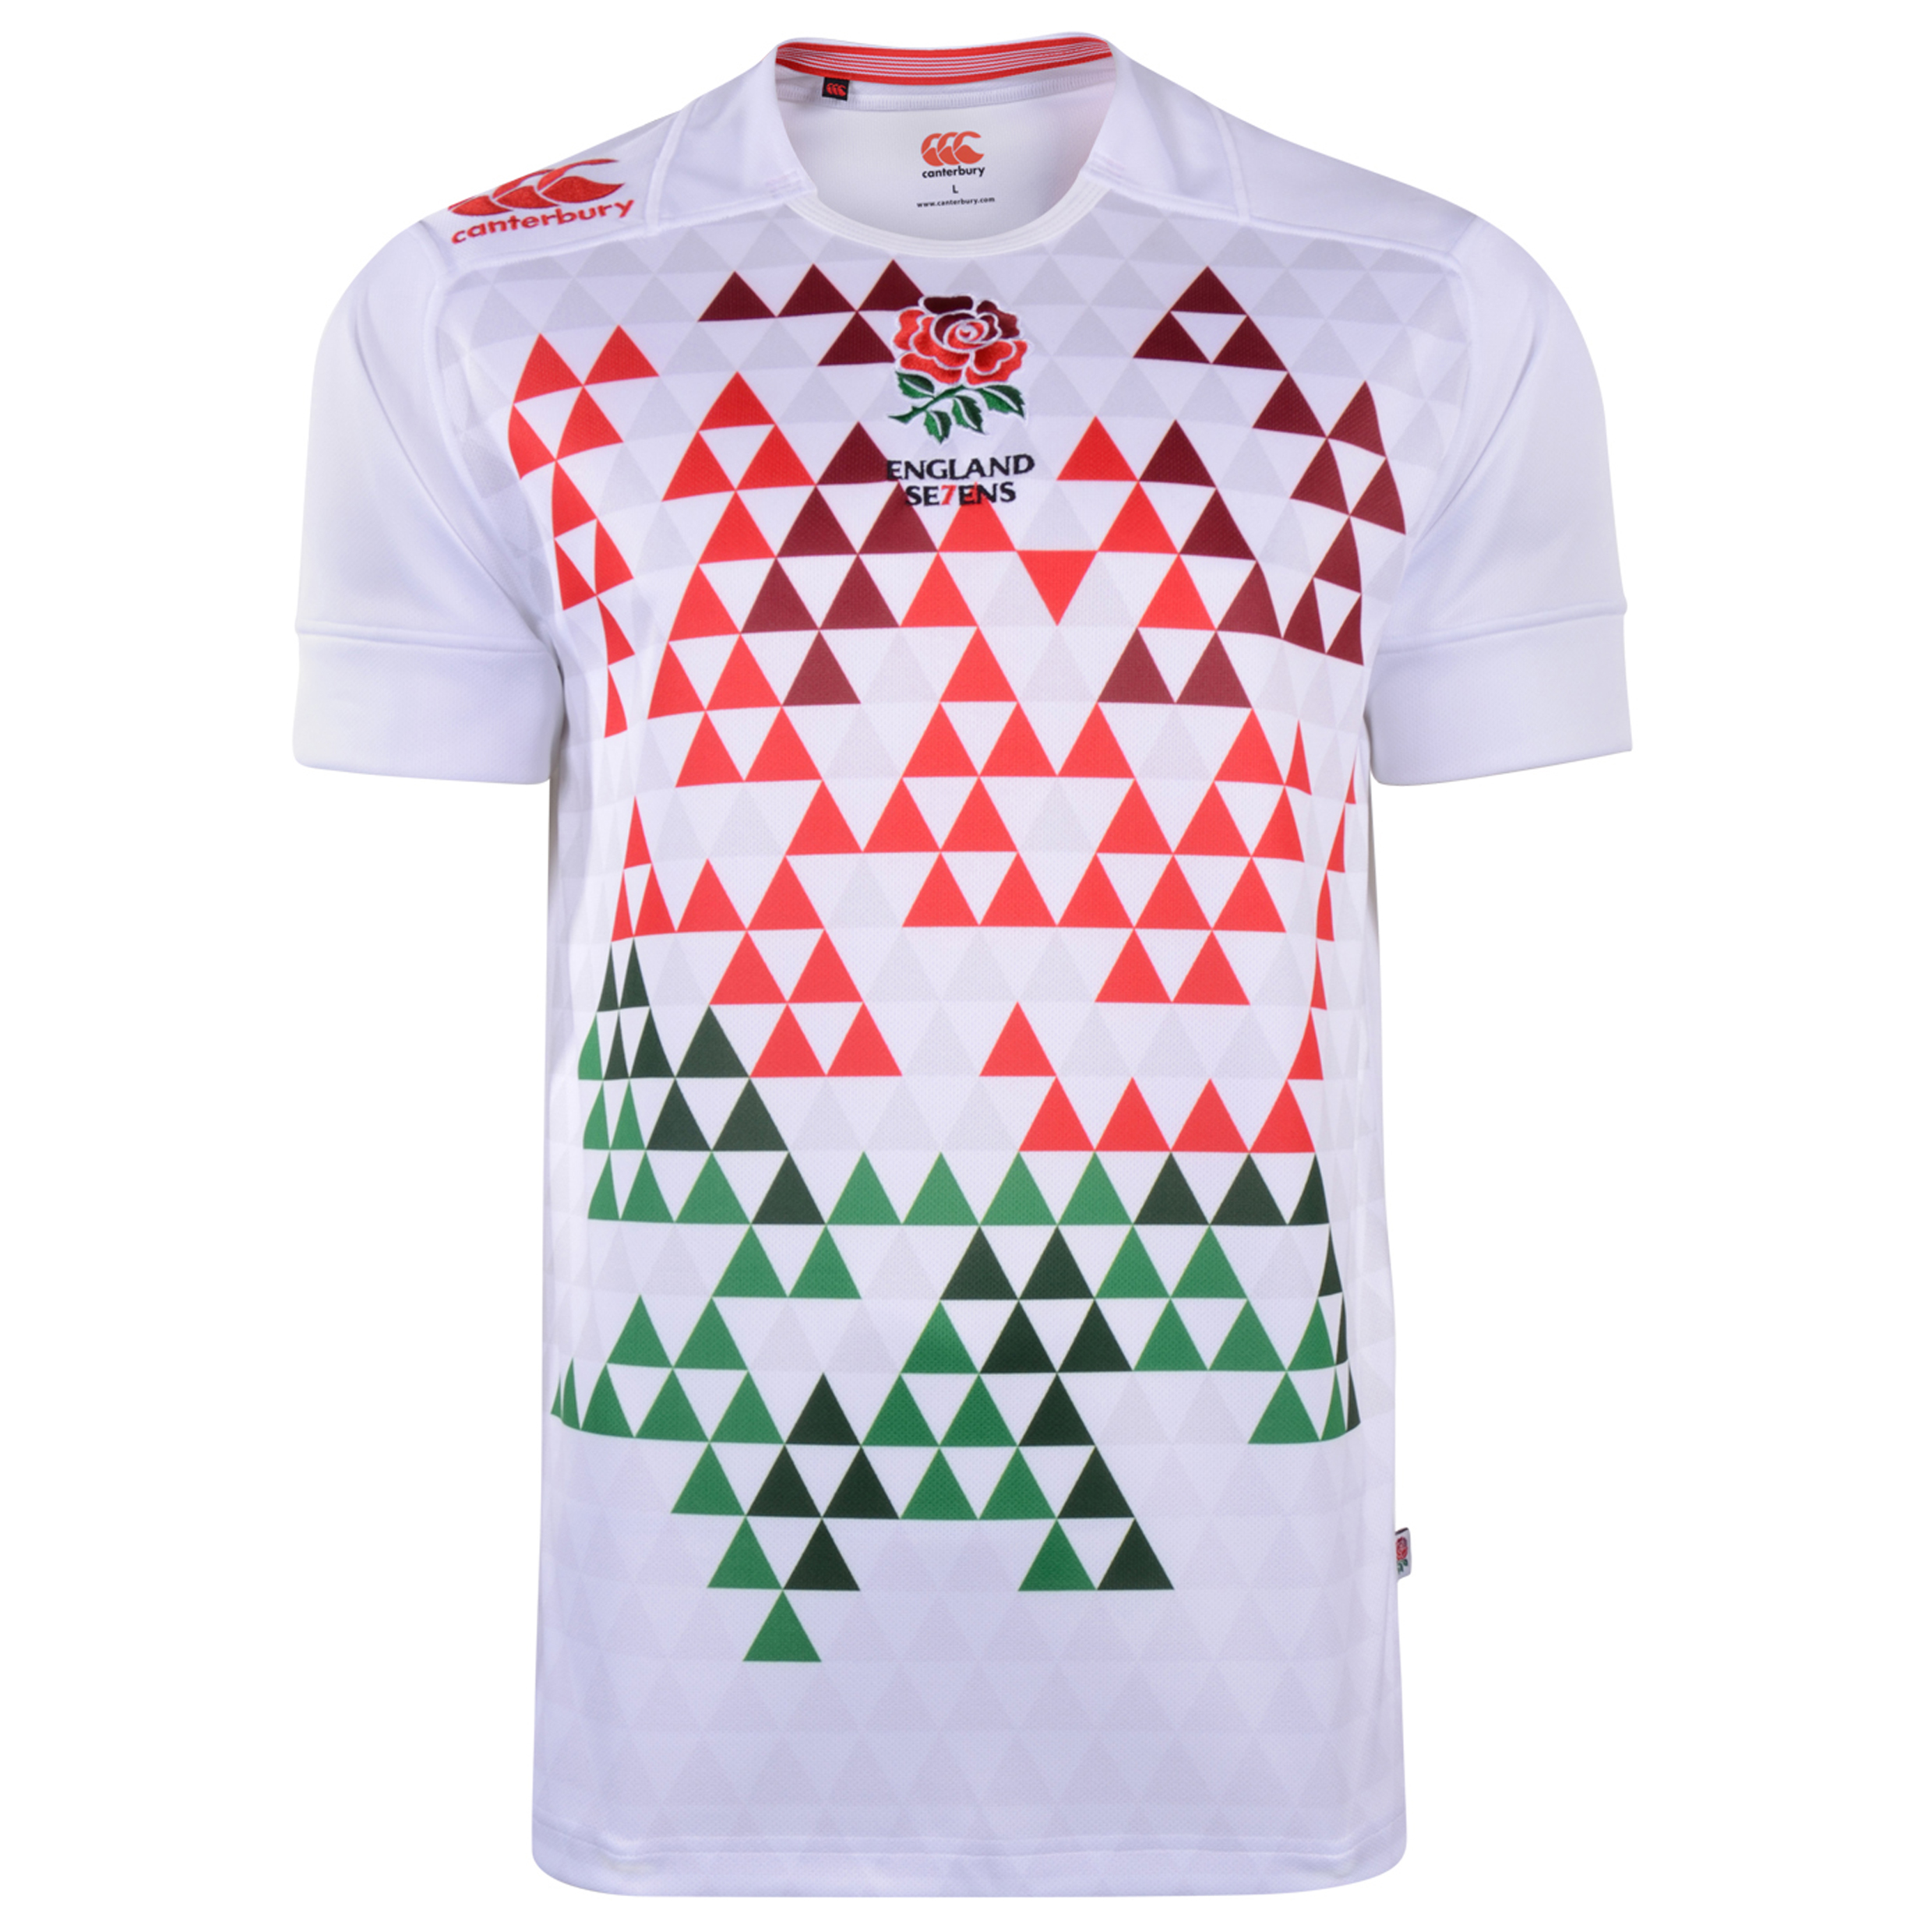 England Home 7's Rugby Pro Shirt 2013/14